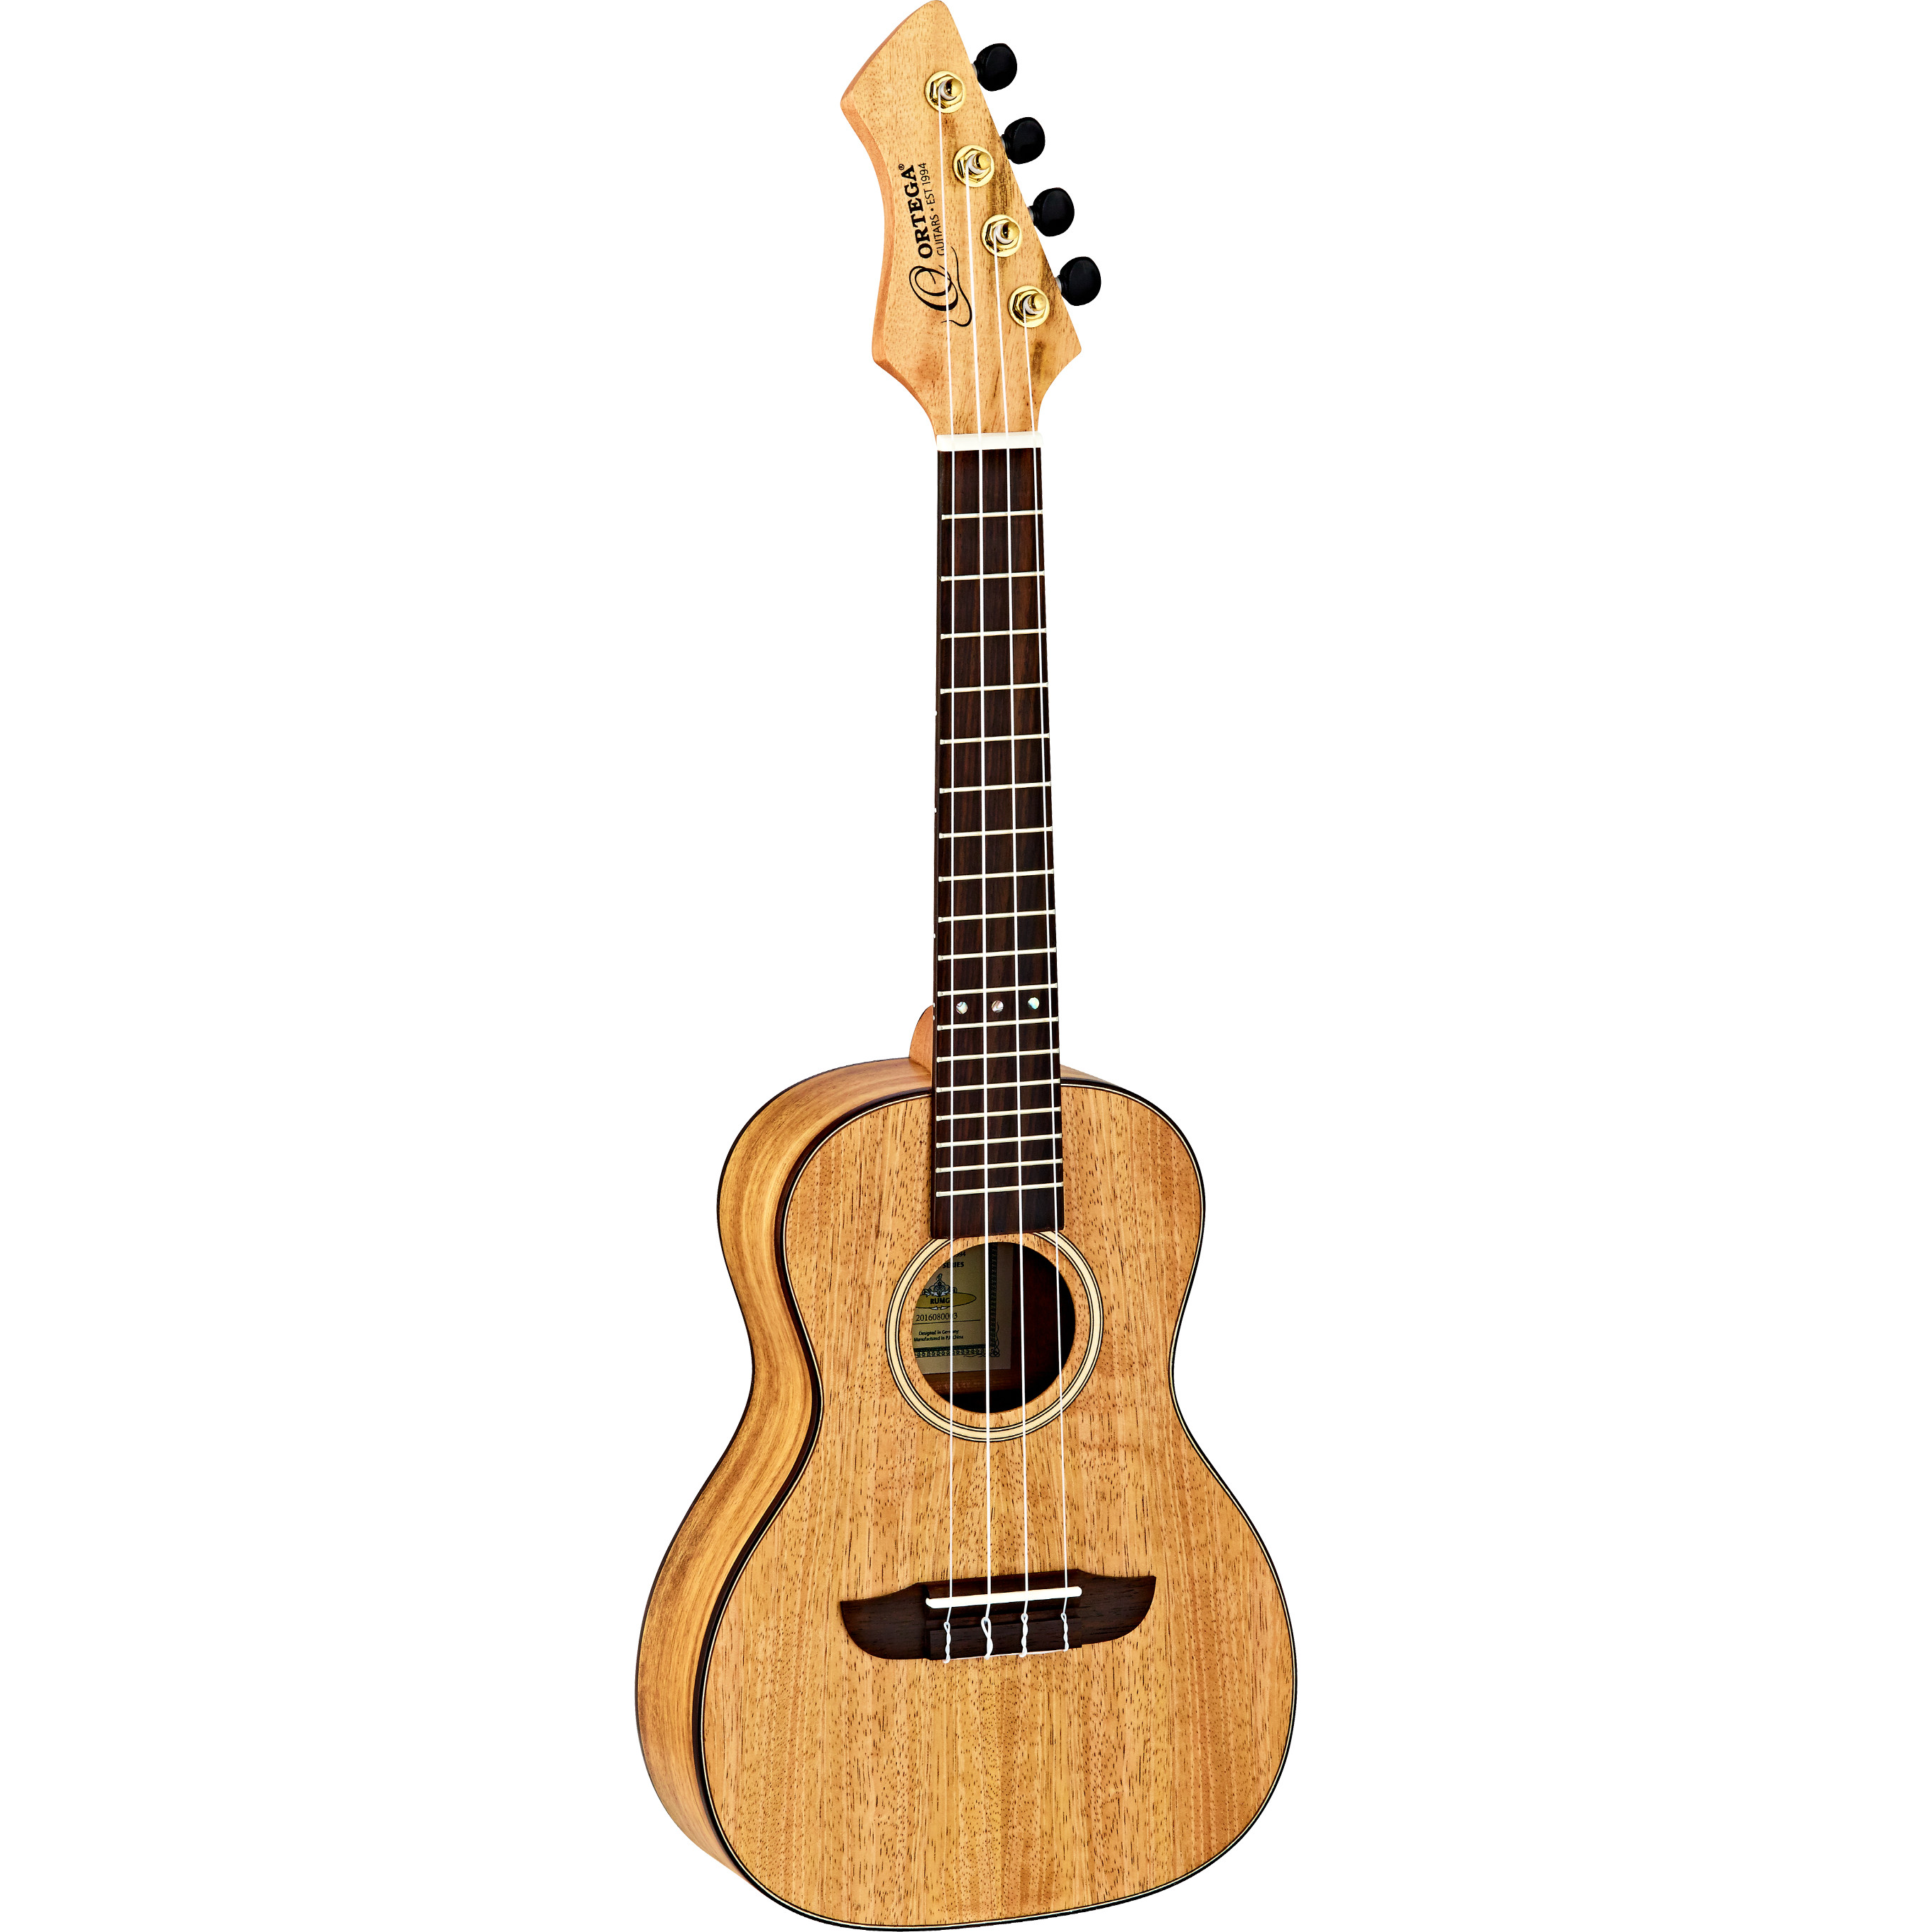 Ortega Horizon Series RUMG concert ukulele with gig bag